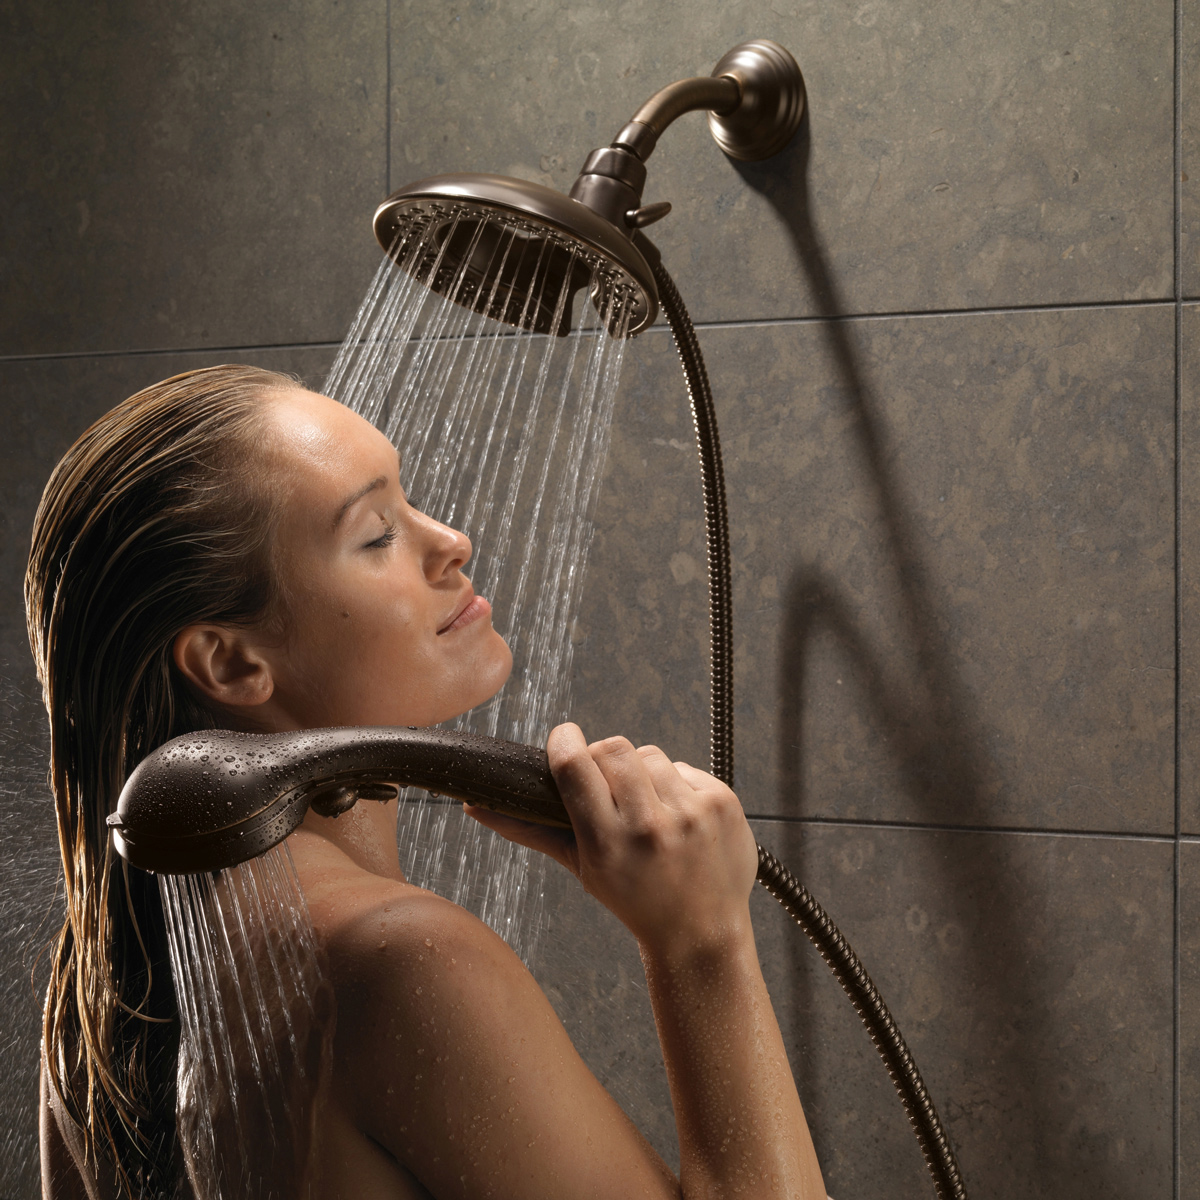 Delta 58045 RB In2ition 2 In 1 Shower Head And Hand Shower With 5 Spray  Settings   Includes Shower Hose And Shower Arm Mount